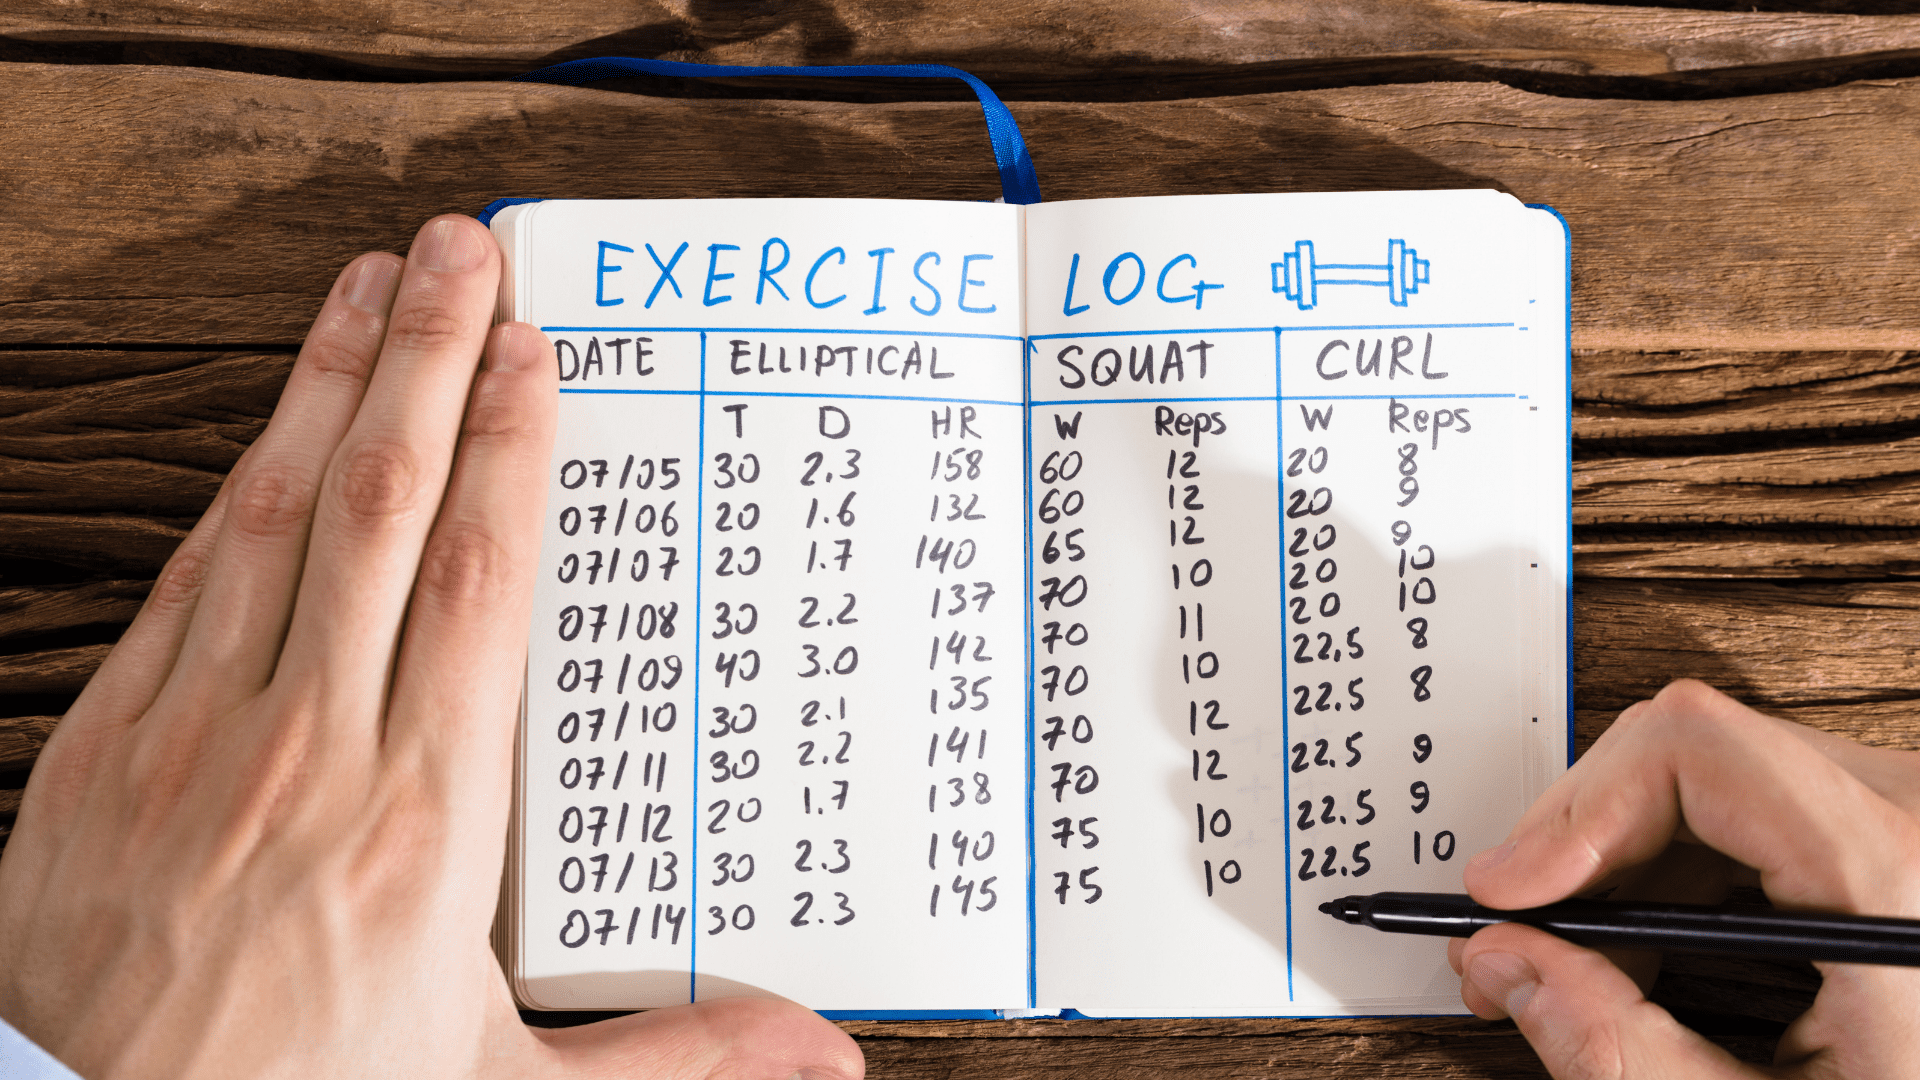 What Does PR Mean In The Gym? - Why You NEED To Track Them!